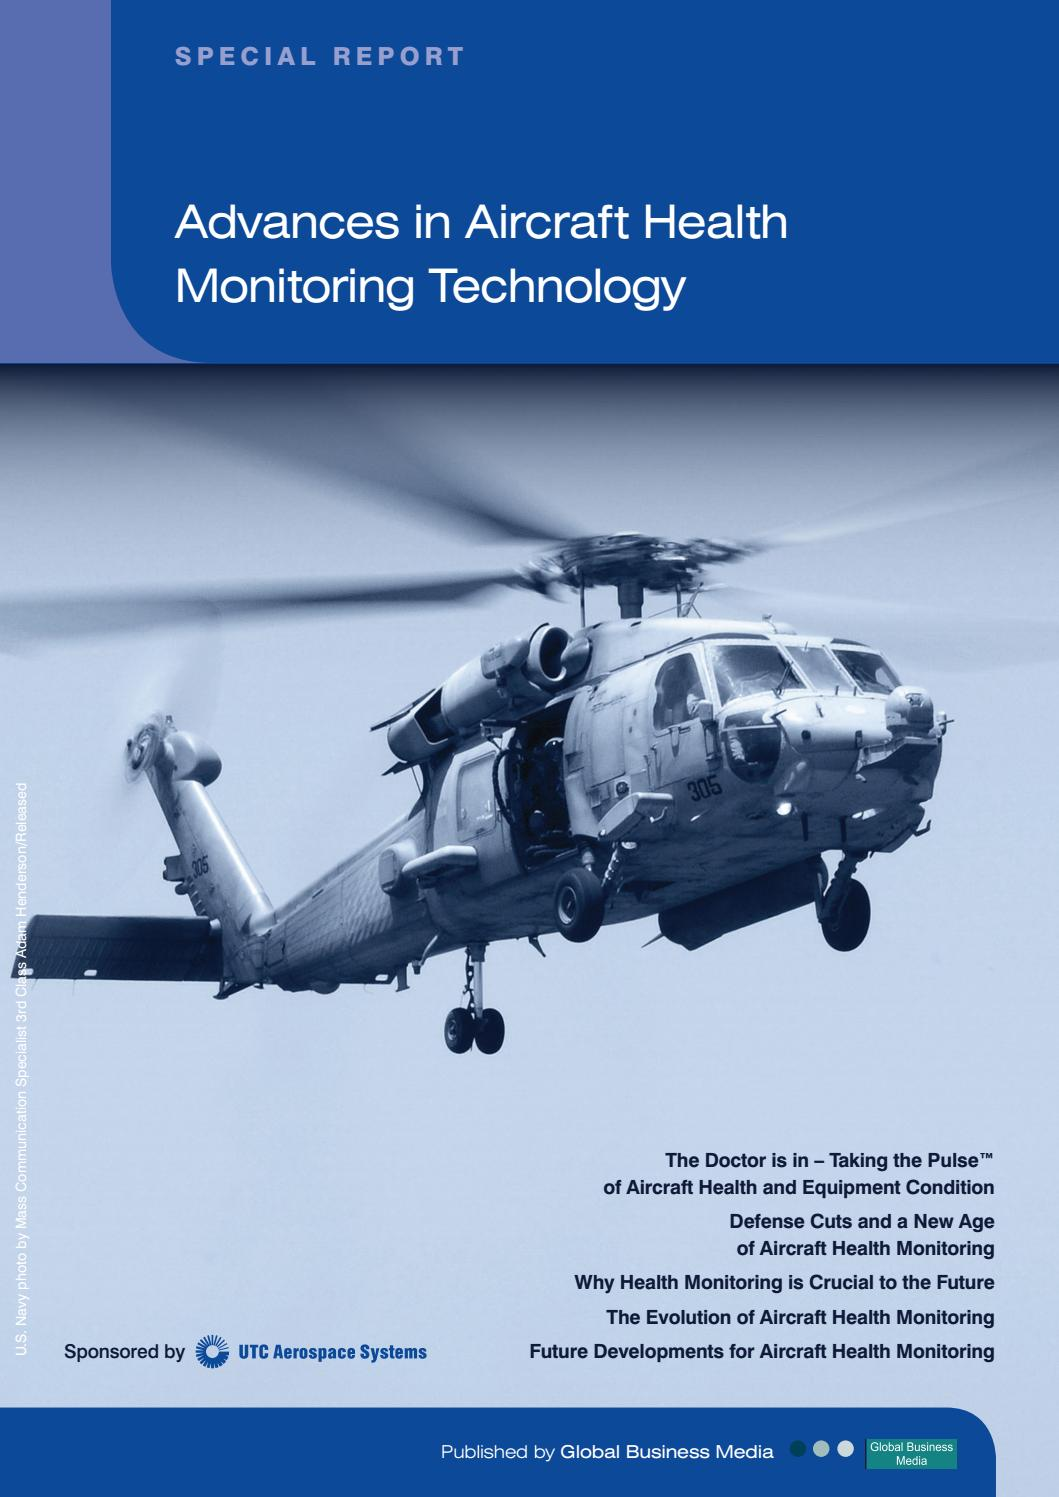 Turbine Engine Vibration Monitoring Systems : Defence industry report advances in aircraft health